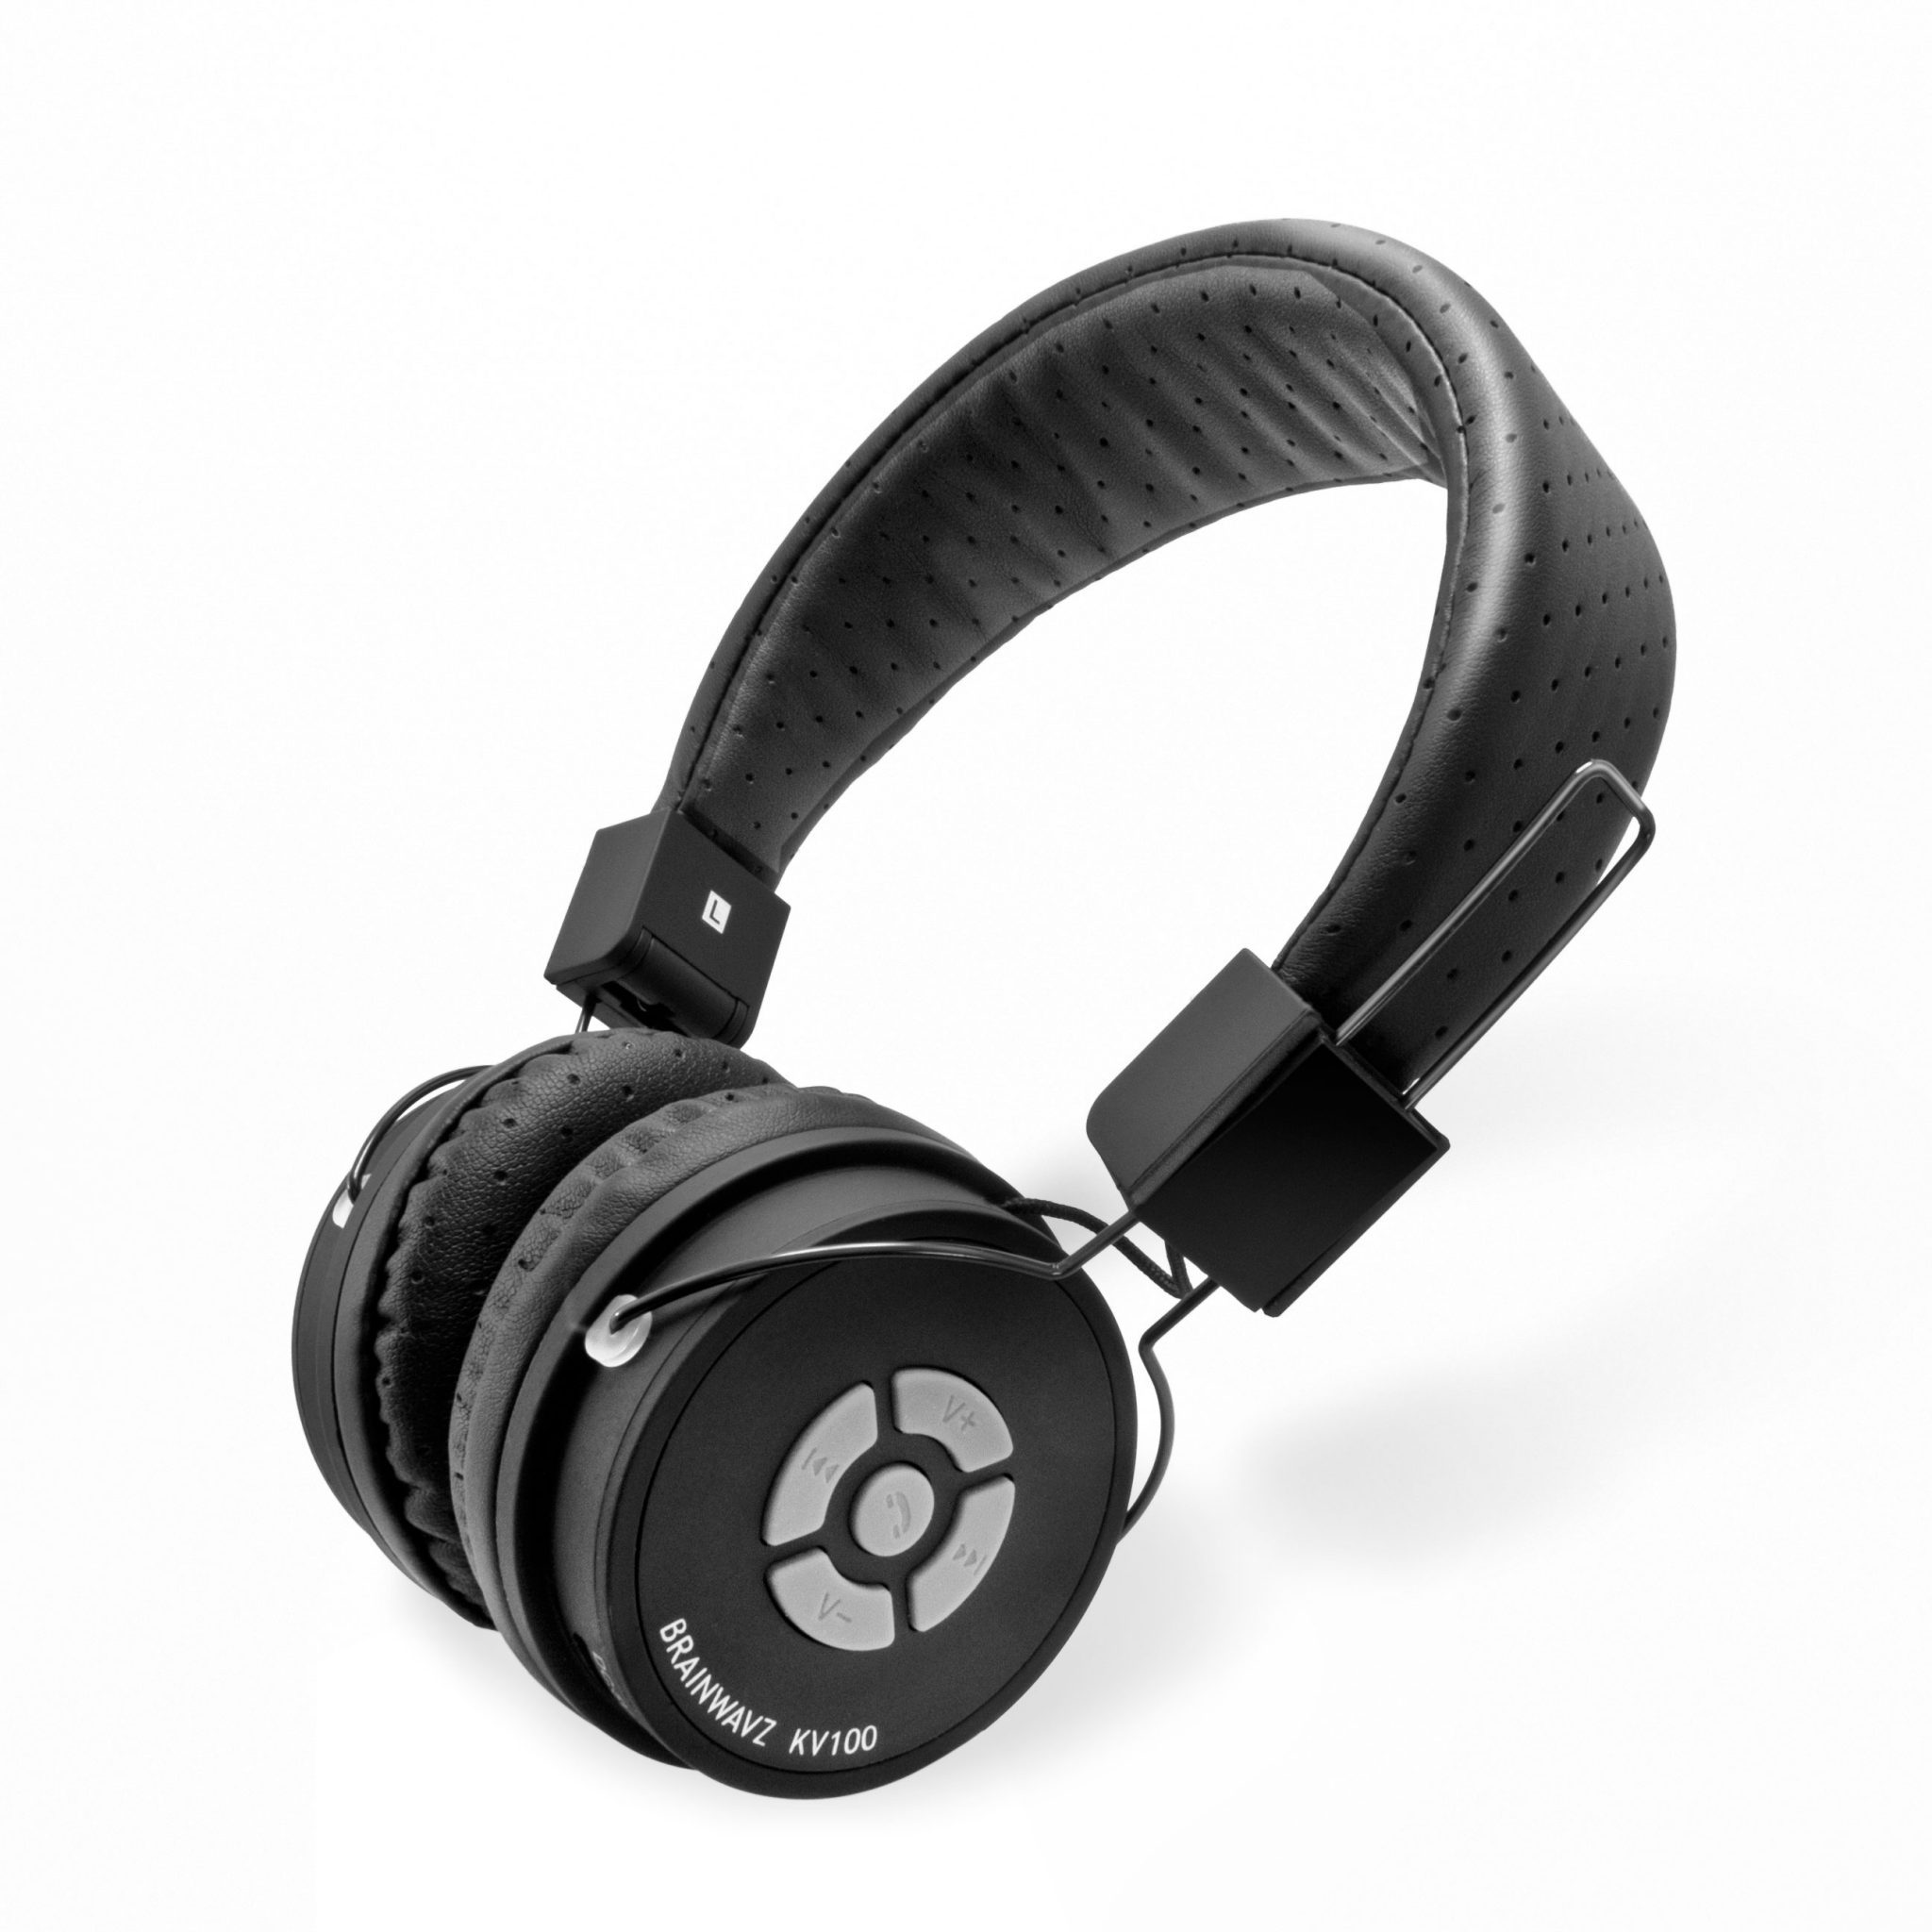 Brainwavz Kidwavz KV-100 Headphone Review